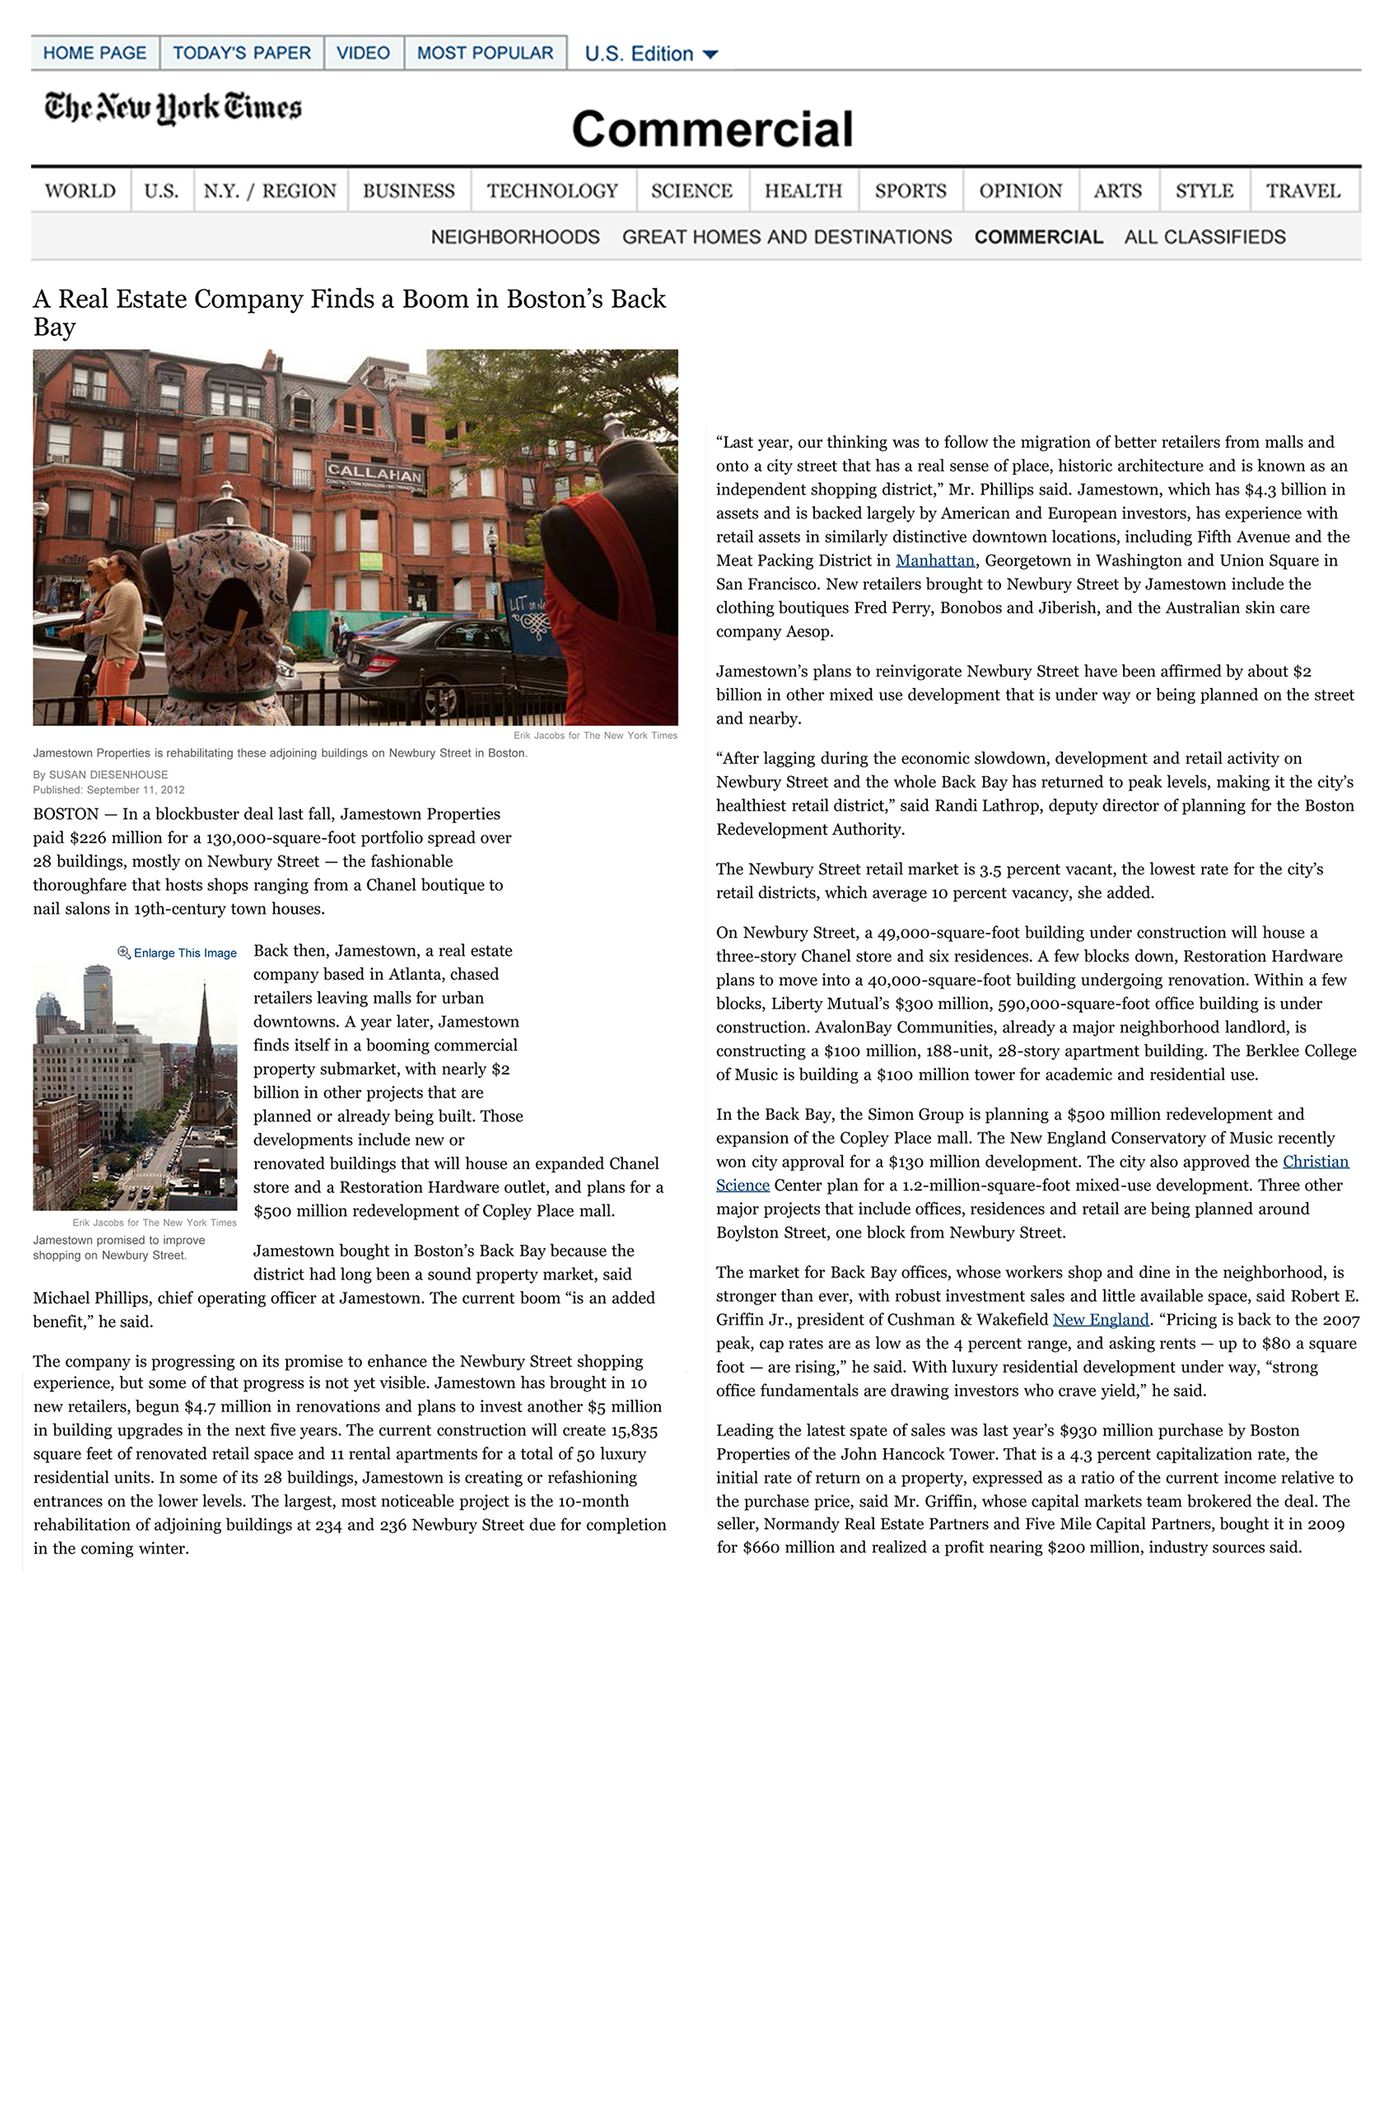 a-real-estate-company-finds-a-boom-in-boston-back-bay-Smook-09-11-2012_Jamestown Properties_NYTimes_Pg1.jpg